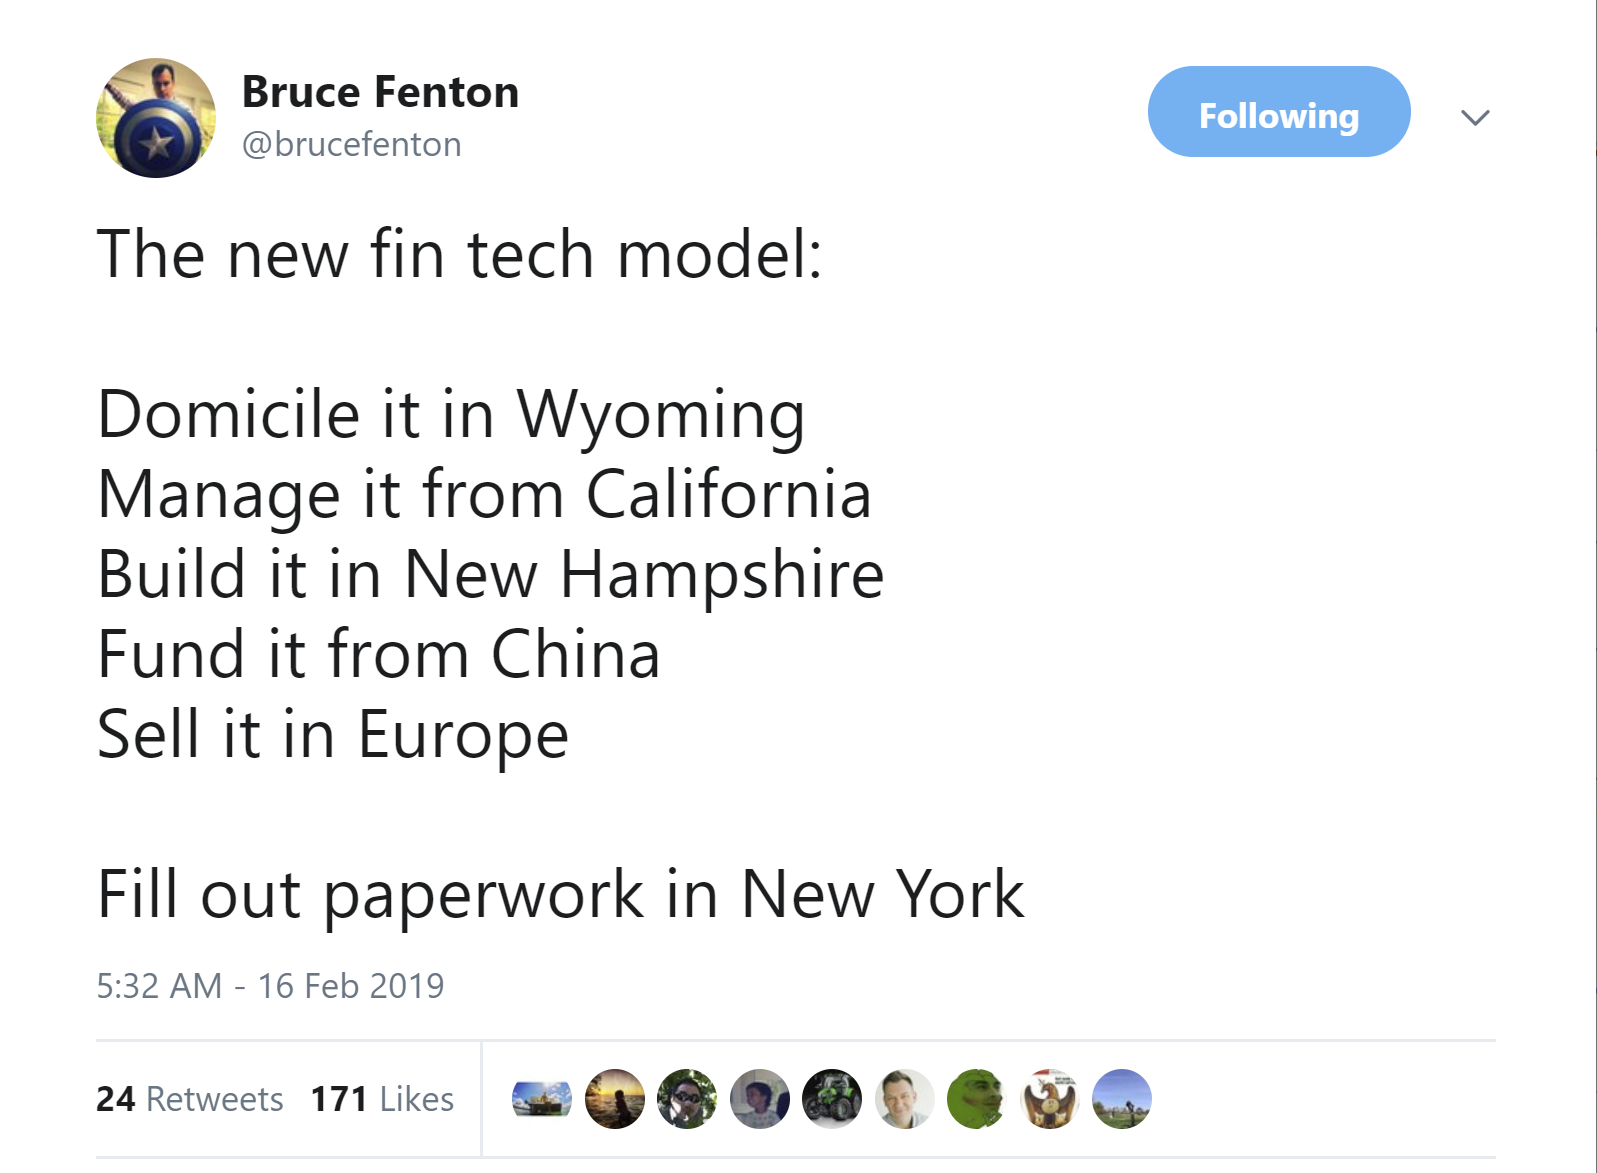 Bruce Fenton Wyoming Tweet